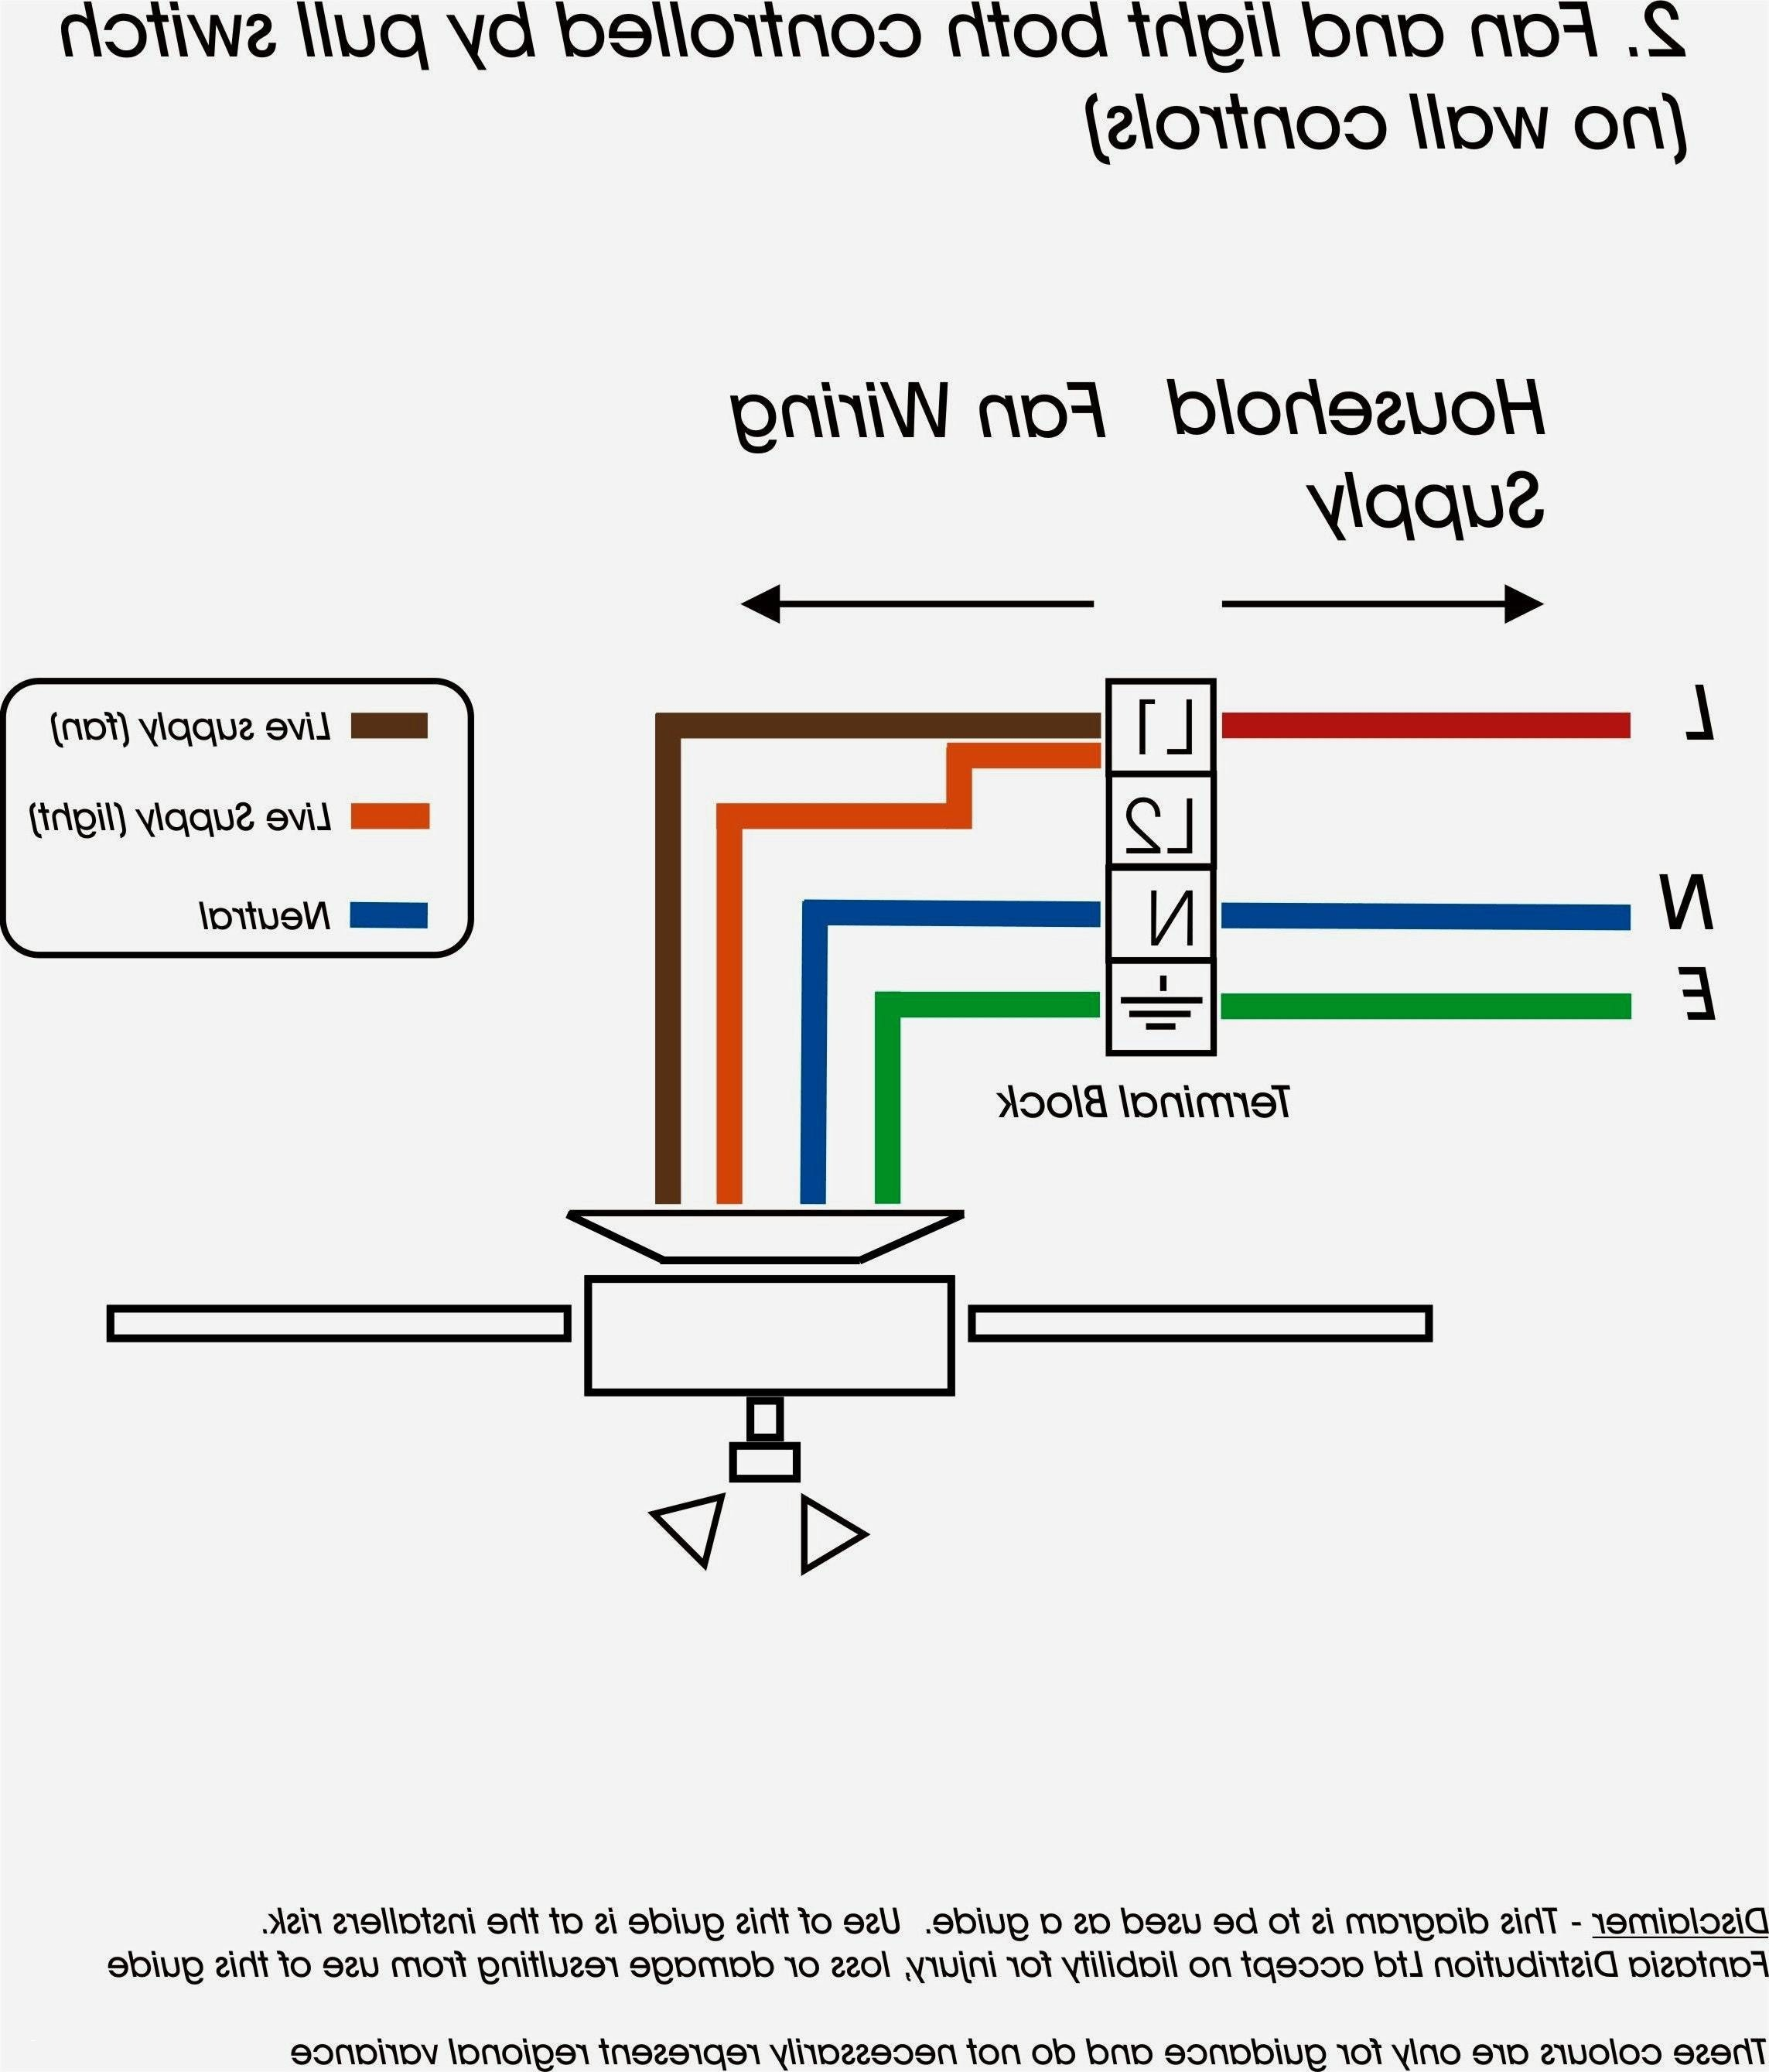 Tow Vehicle Wiring Diagram Simple Tow Vehicle Wiring Diagram Fresh Wiring Diagram Rv 7 Way Plug